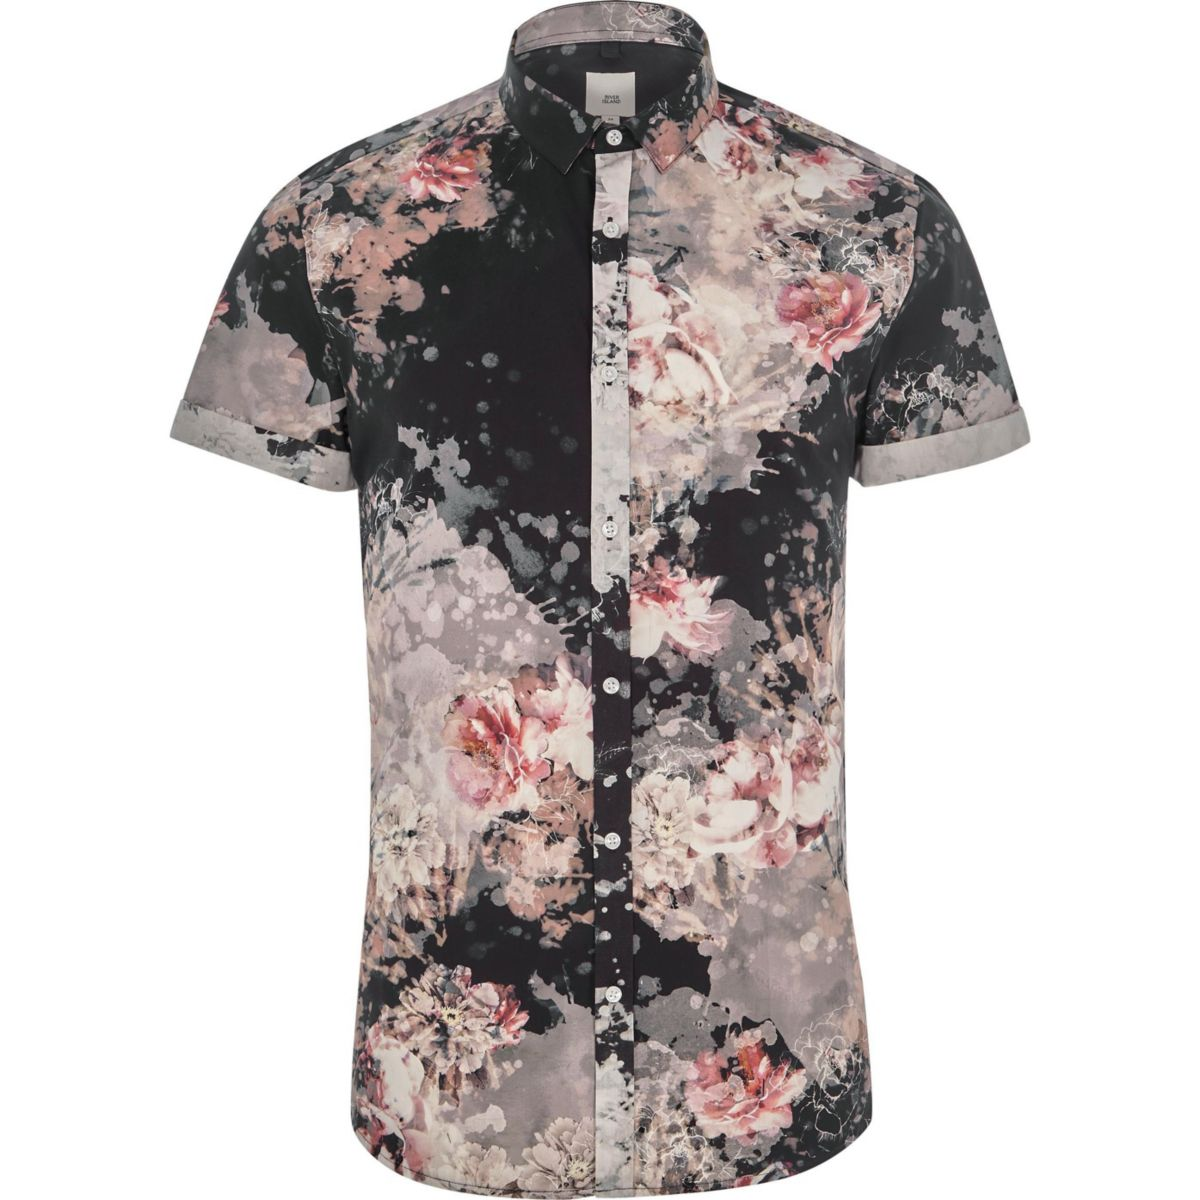 Consider the Floral Shirt This Spring Be it subtle sprouts or an overgrown garden, a floral-printed shirt is the must-have item of the season.